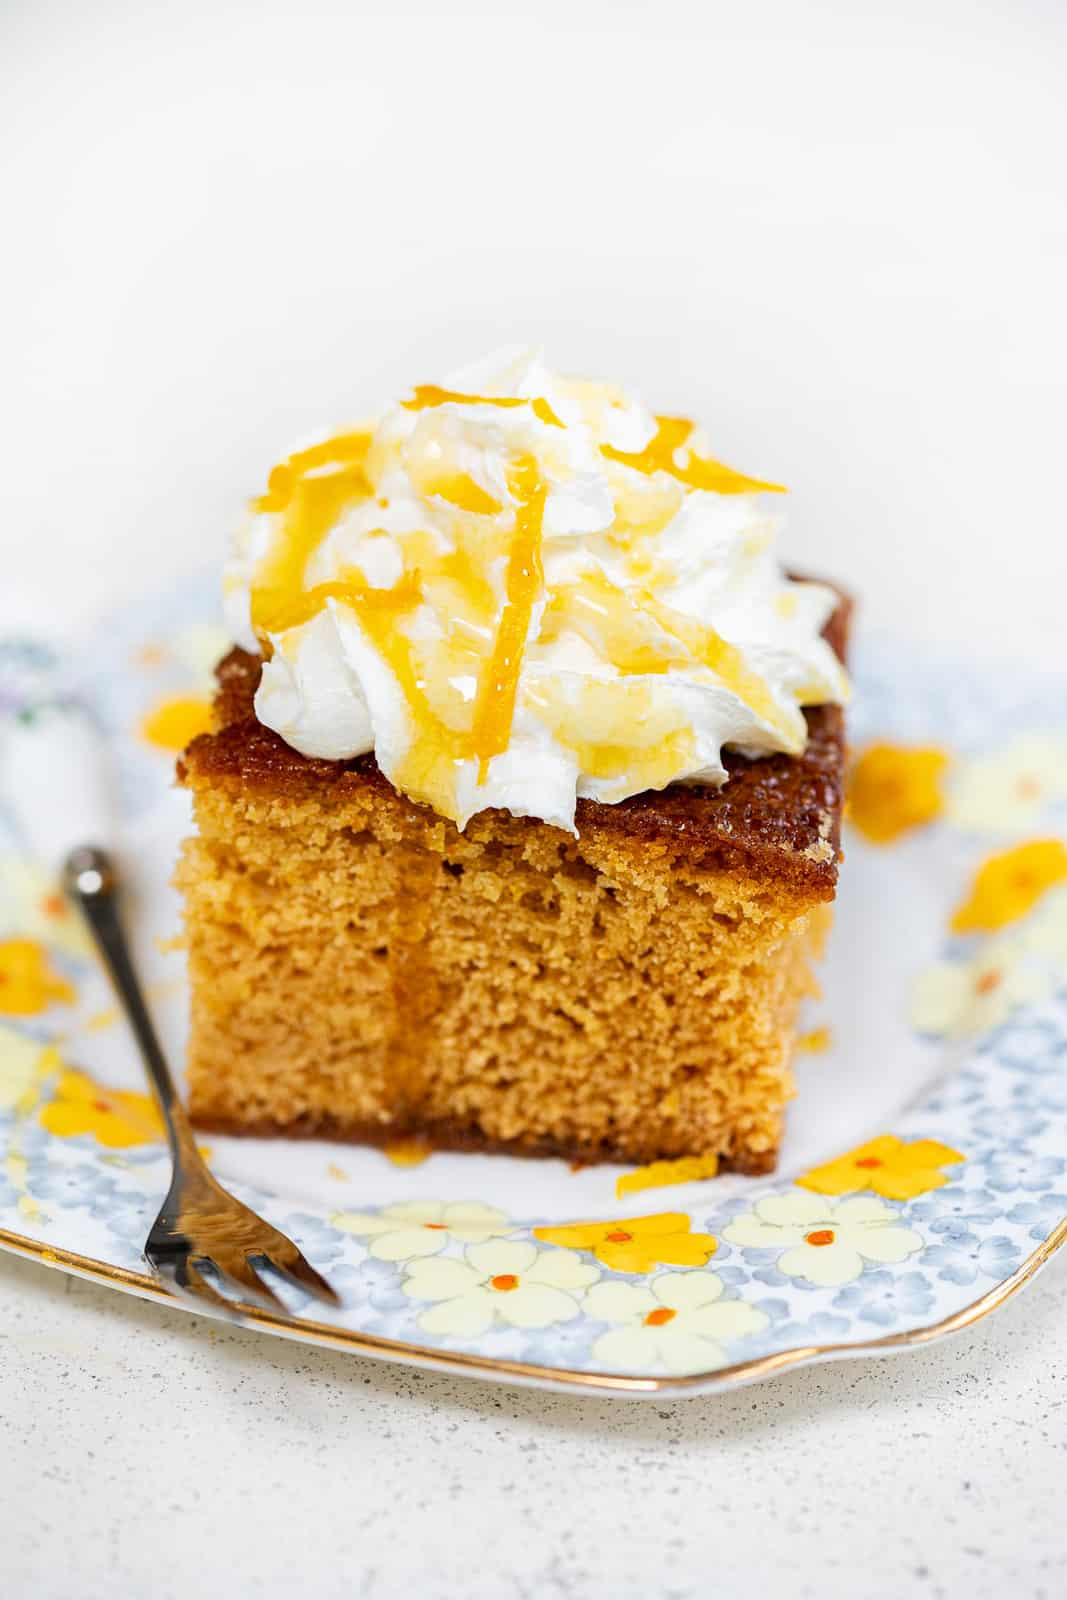 Golden syrup cake topped with whipped cream on a floral plate